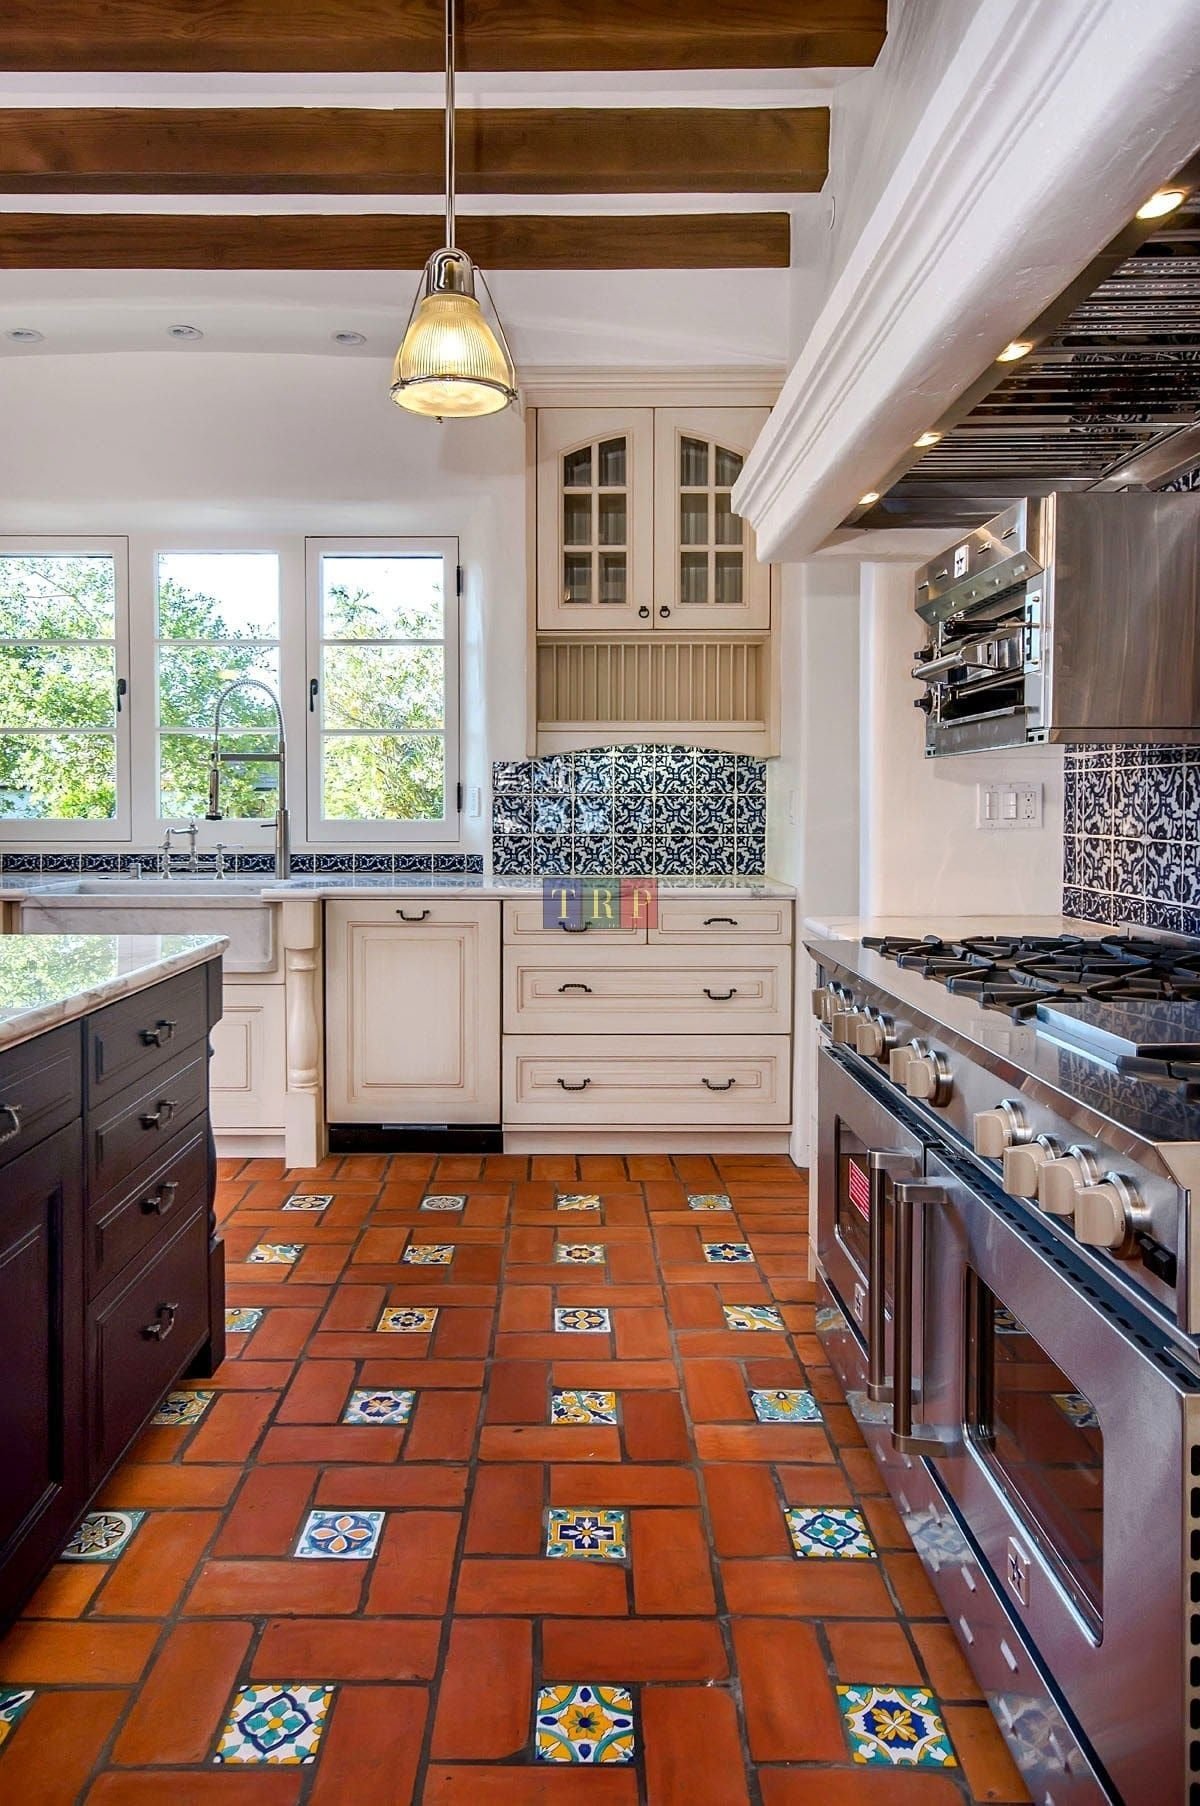 30 Kitchen Floor Tile Ideas Best Of Remodeling Kitchen Tiles In Modern Retro And Vintage Style Spanish Style Kitchen Kitchen Design Styles Kitchen Style